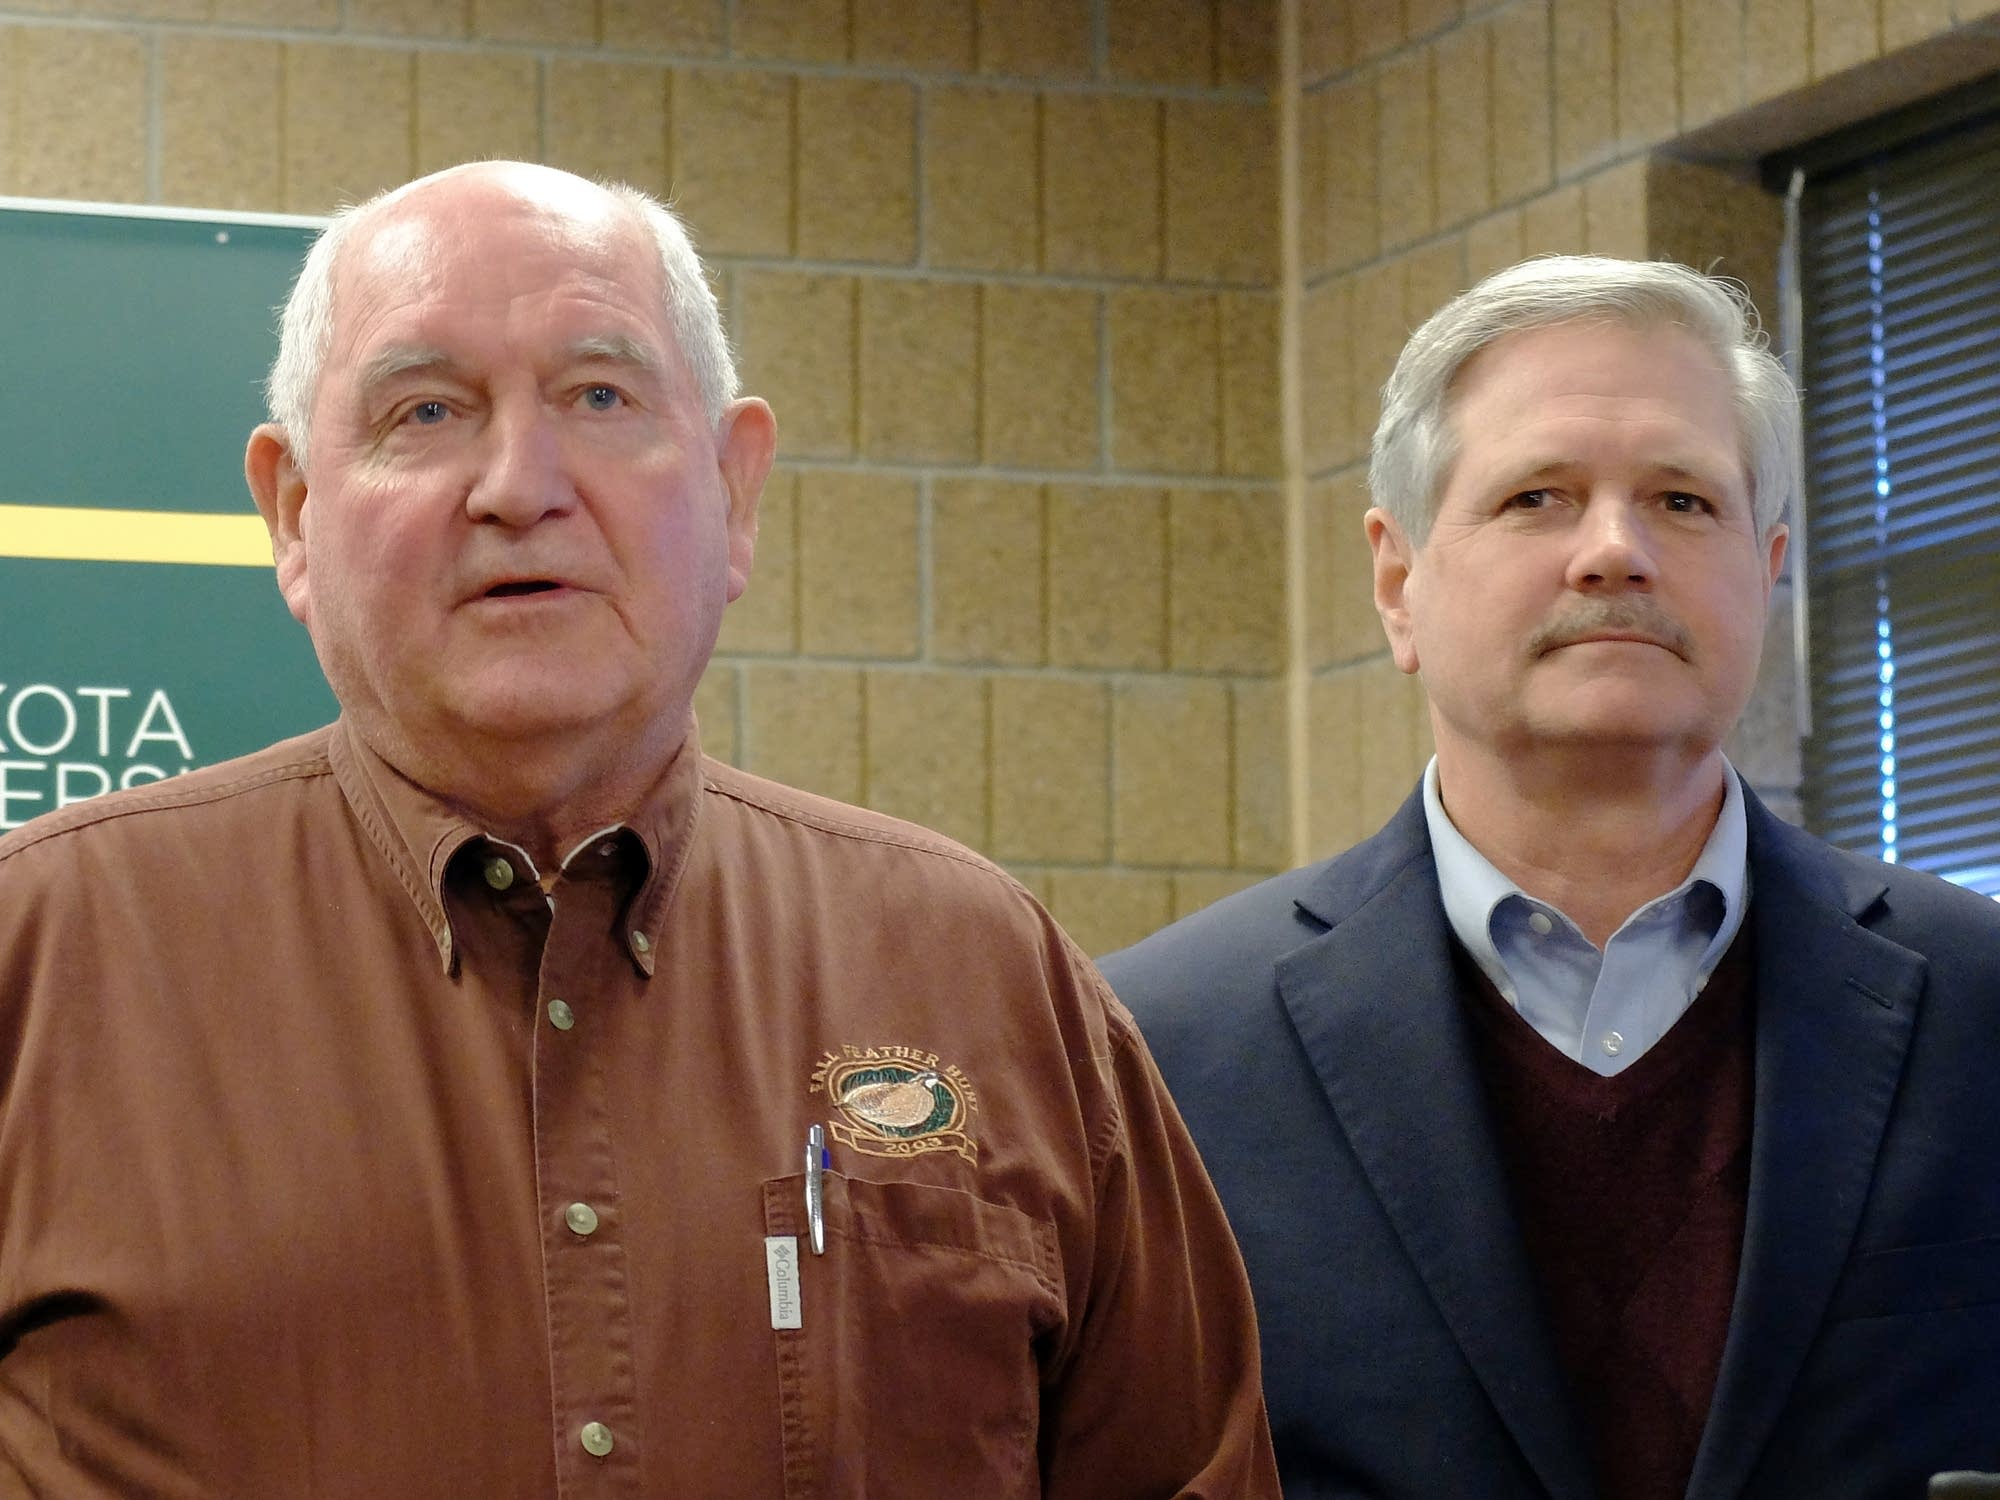 U.S. Agriculture Secretary Sonny Perdue, left, speaks with reporters.